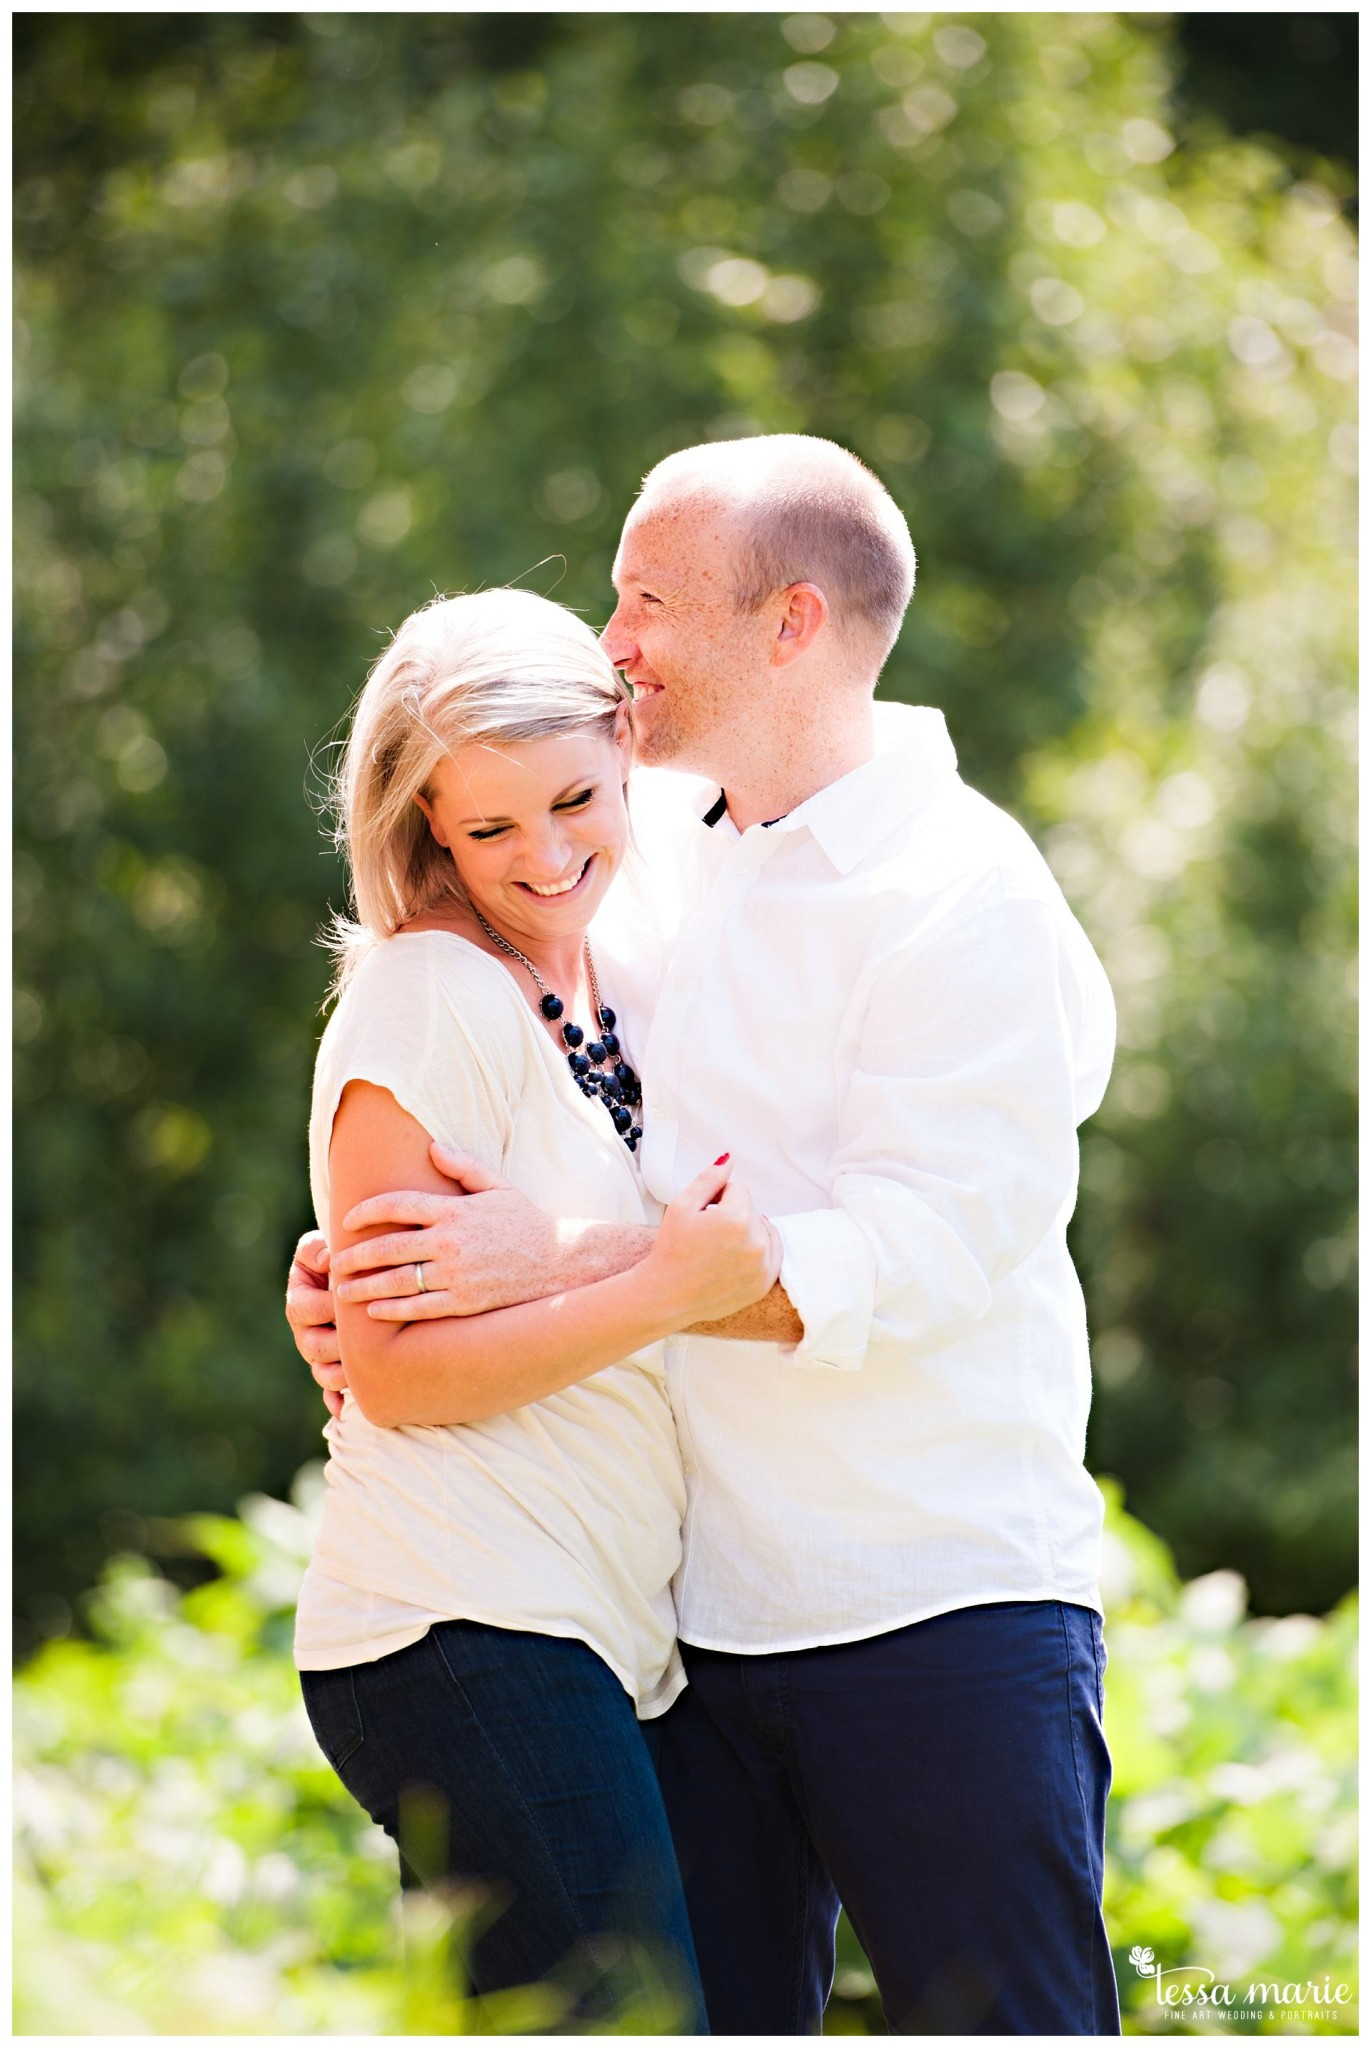 tessa_marie_weddings_legacy_story_focused_wedding_pictures_atlanta_wedding_photographer_family_pictures_portrait_Fine_art_memories_mothers_day_spring_moments_0284